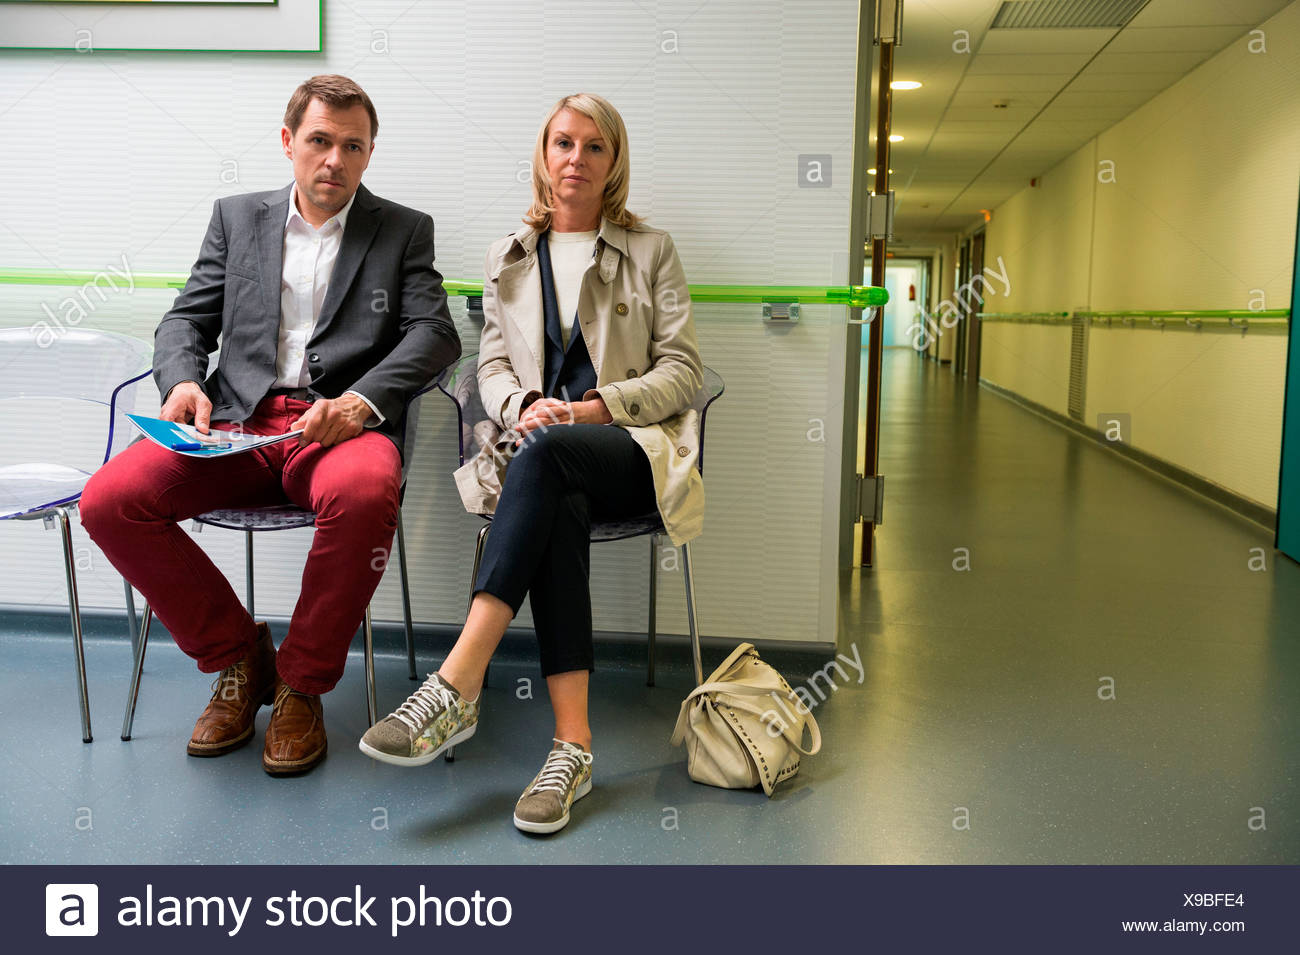 Couple assis dans la salle d'attente d'un hôpital Photo Stock